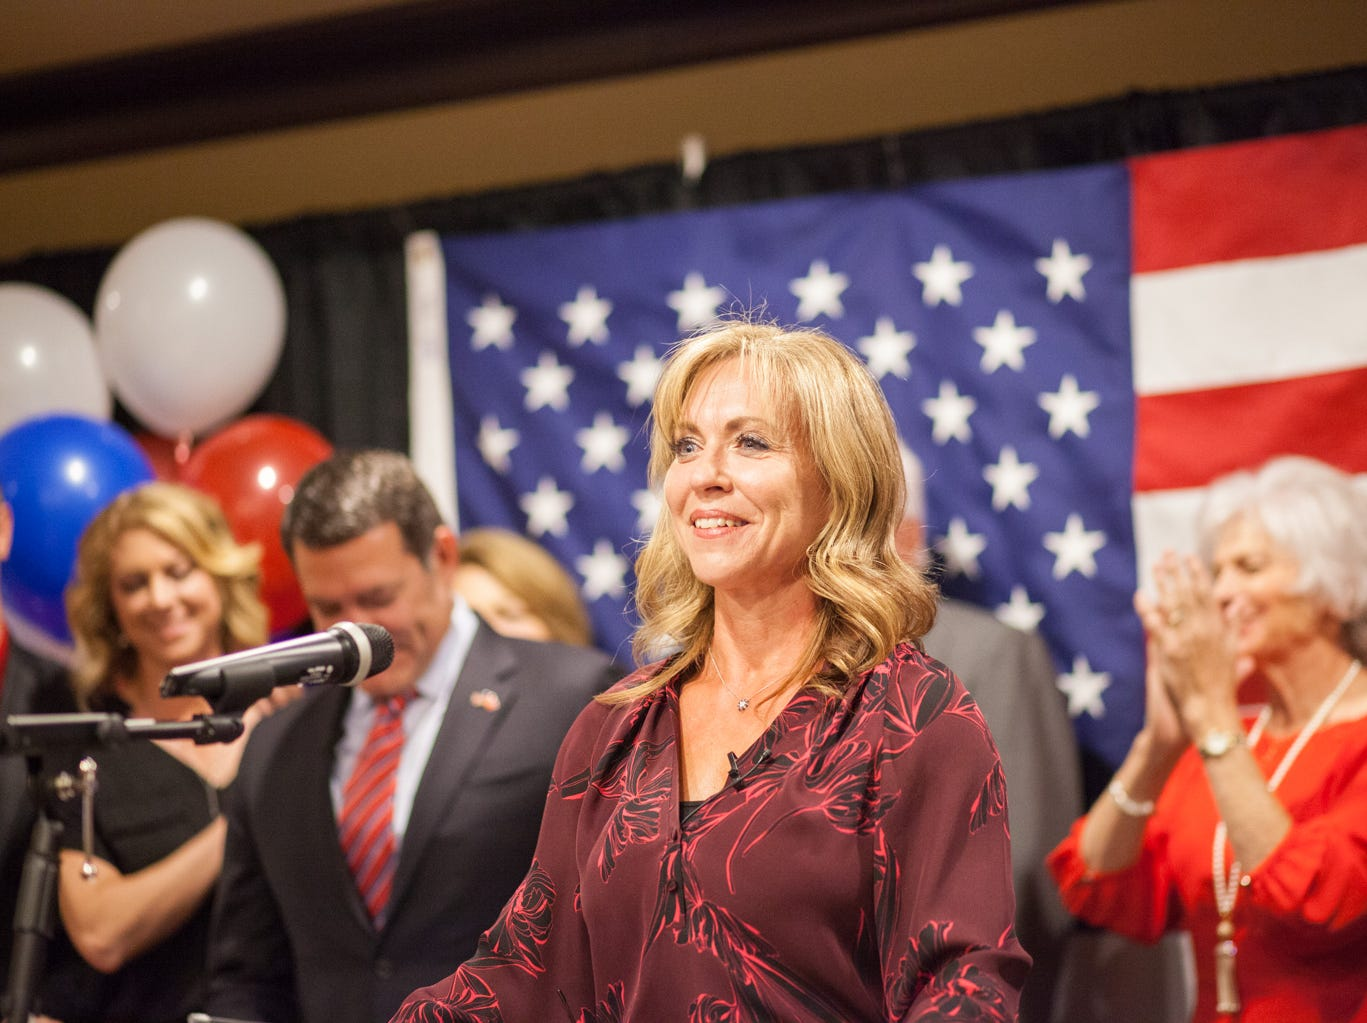 Mark Green's Wife Camilla introduces the senator after he won his race at the watch party on Tuesday.